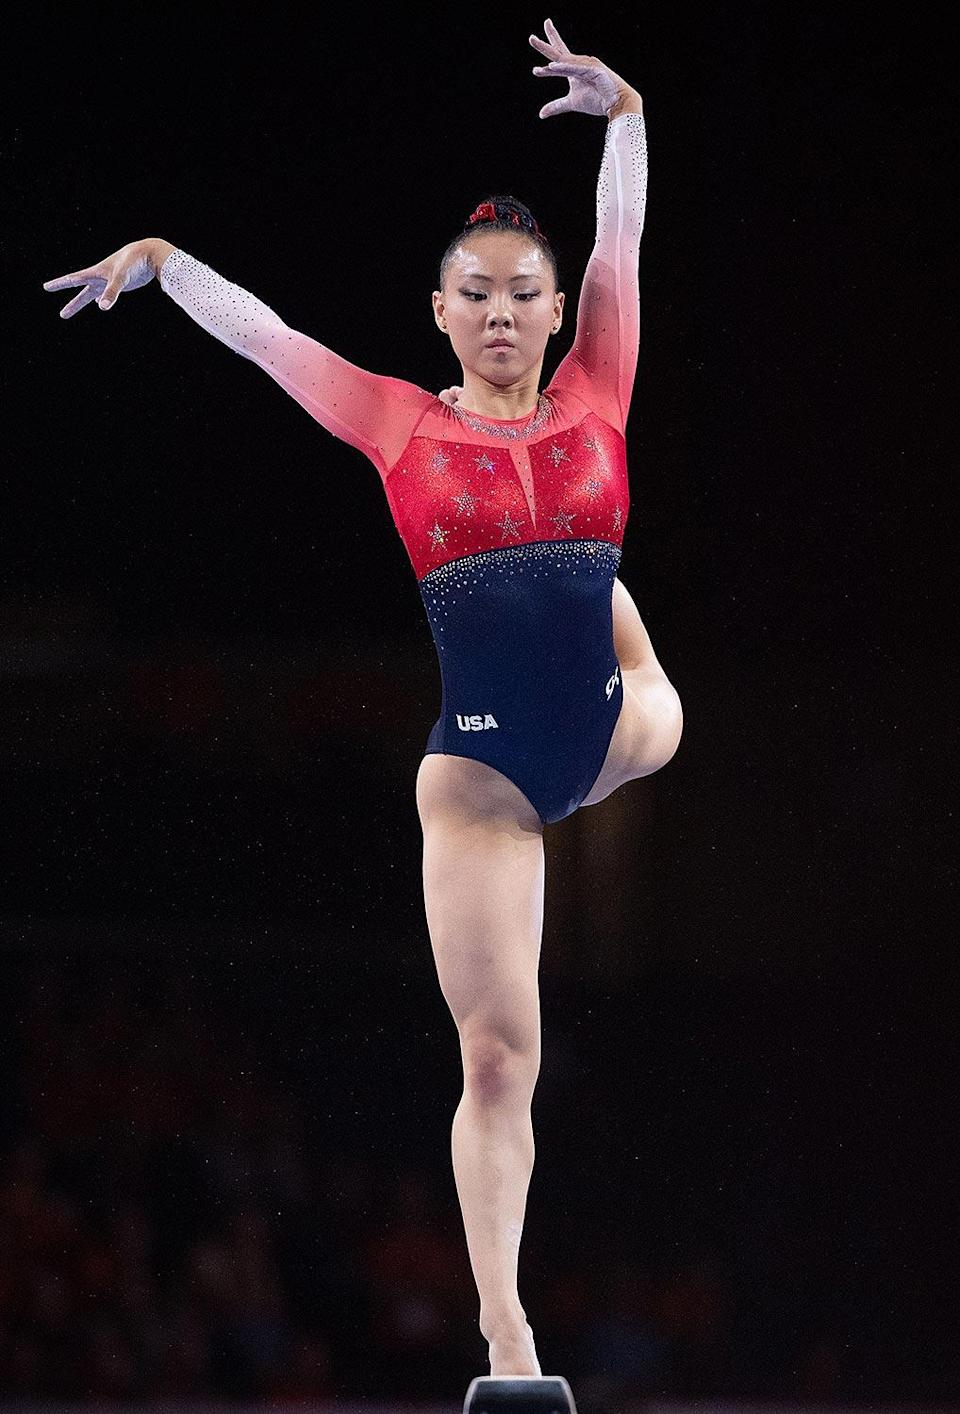 """<p>The 18-year-old gymnastics alternate from Team U.S.A. (who was initially not identified, but has now been named as Eaker) <a href=""""https://people.com/sports/tokyo-olympics-gymnastics-alternate-tests-positive-coronavirus-other-athletes/"""" rel=""""nofollow noopener"""" target=""""_blank"""" data-ylk=""""slk:tested positive"""" class=""""link rapid-noclick-resp"""">tested positive</a> on July 19, <a href=""""https://www.nbcnews.com/news/olympics/member-u-s-women-s-gymnastics-team-tests-positive-covid-n1274334"""" rel=""""nofollow noopener"""" target=""""_blank"""" data-ylk=""""slk:according to NBC News"""" class=""""link rapid-noclick-resp"""">according to NBC News</a>. The outlet reported that she has been contained to training facilities in Narita, Japan after she came in """"close contact"""" with another athlete on the team, who has since been placed """"on standby.""""</p> <p>Al Fong, personal coach for Eaker and fellow alternate Leanne Wong, told <a href=""""https://apnews.com/article/gymnast-covid-2020-tokyo-olympics-44e21e98694b6c82cb57429bf8af4644"""" rel=""""nofollow noopener"""" target=""""_blank"""" data-ylk=""""slk:The Associated Press"""" class=""""link rapid-noclick-resp"""">The Associated Press</a> that Eaker was vaccinated in May, and that both athletes have been placed in isolation.</p> <p>Eaker is the first American to test positive.</p>"""